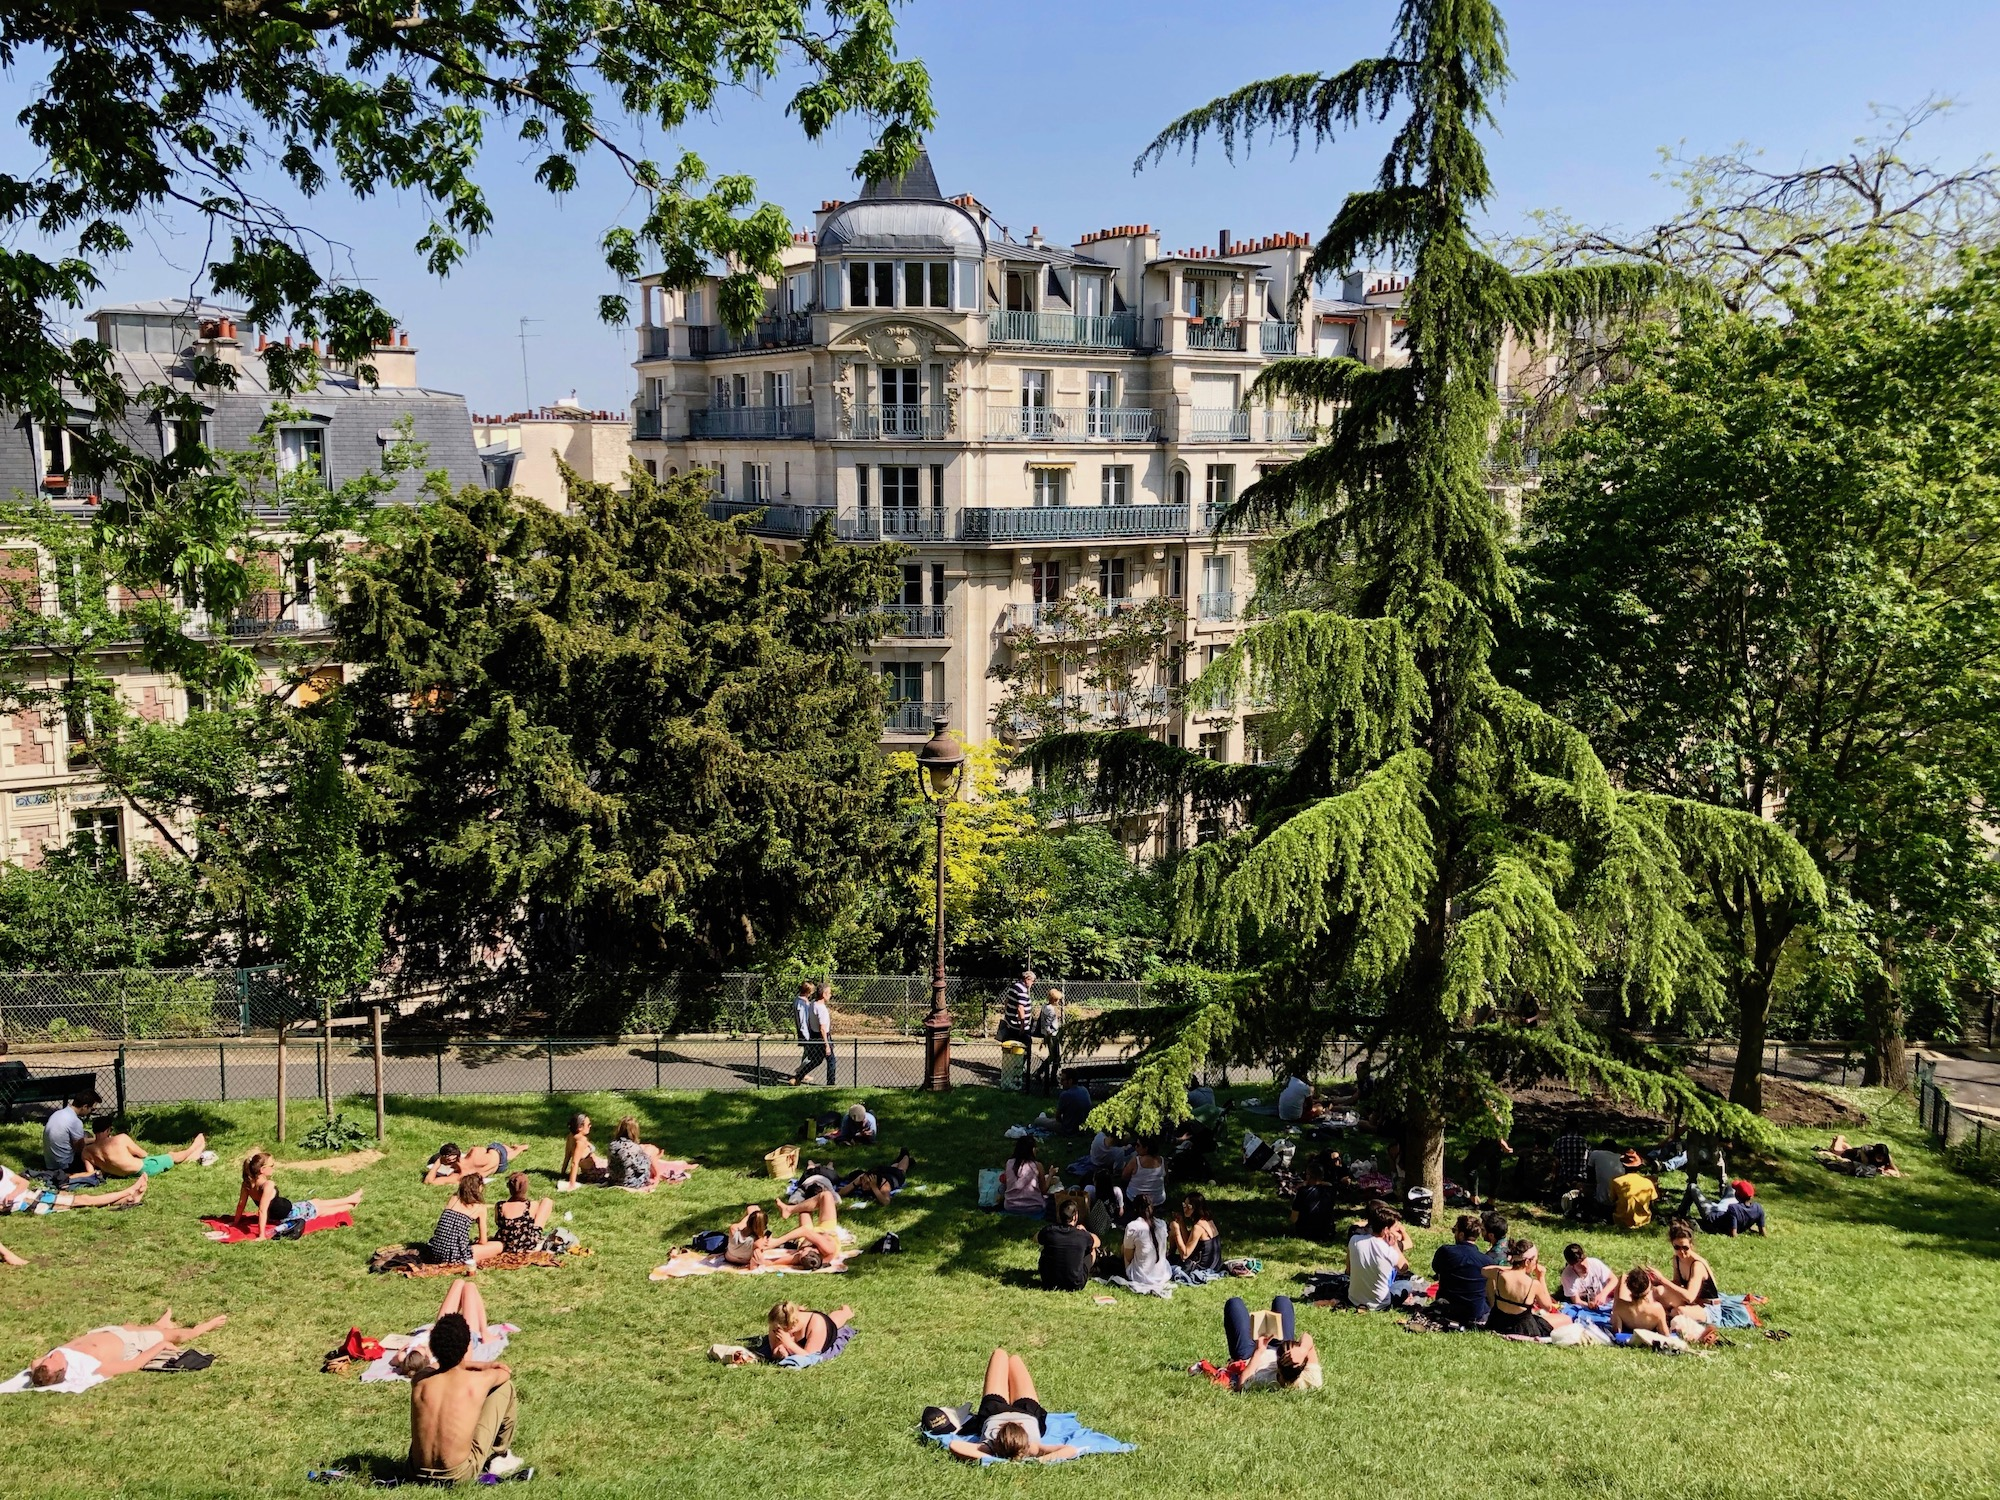 HiP Paris Blog tells you about one writer's experience learning French in Paris and how they explored the city's hidden parks like this spot behind the Sacré Coeur where locals like to tan in summer.